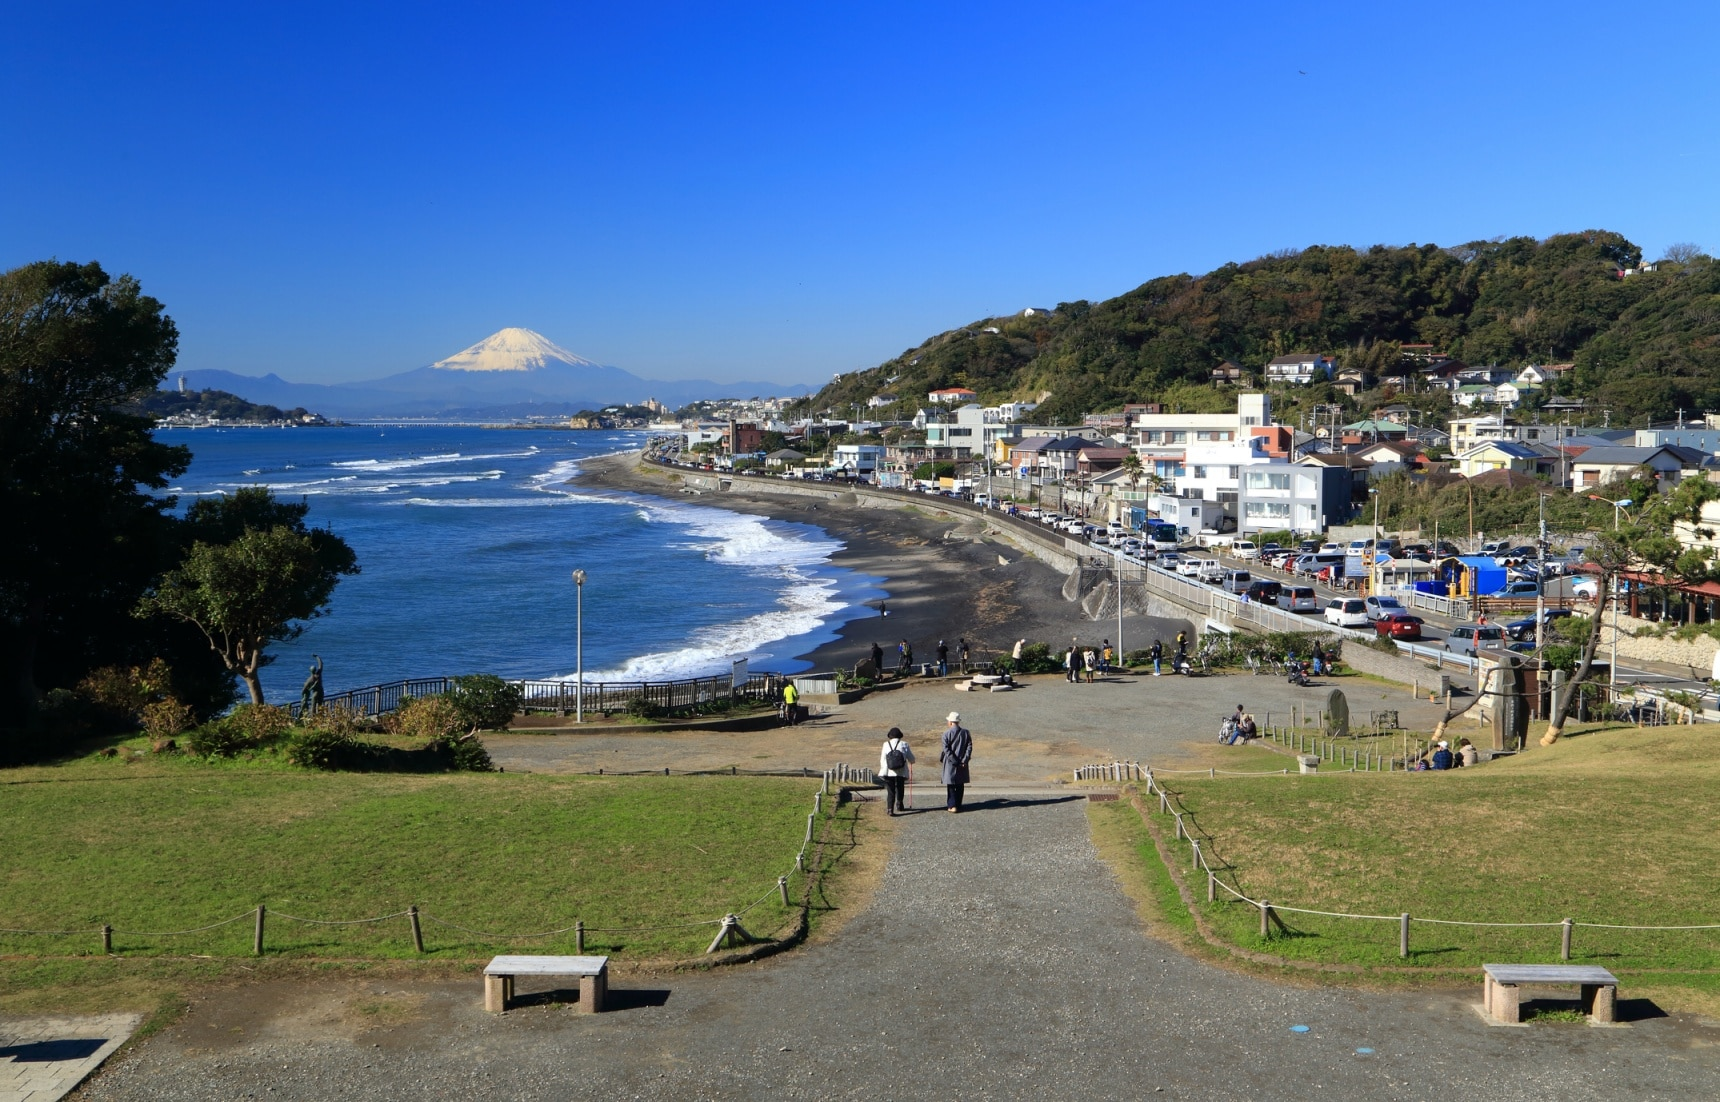 Enoshima: The Perfect Beach Escape from Tokyo